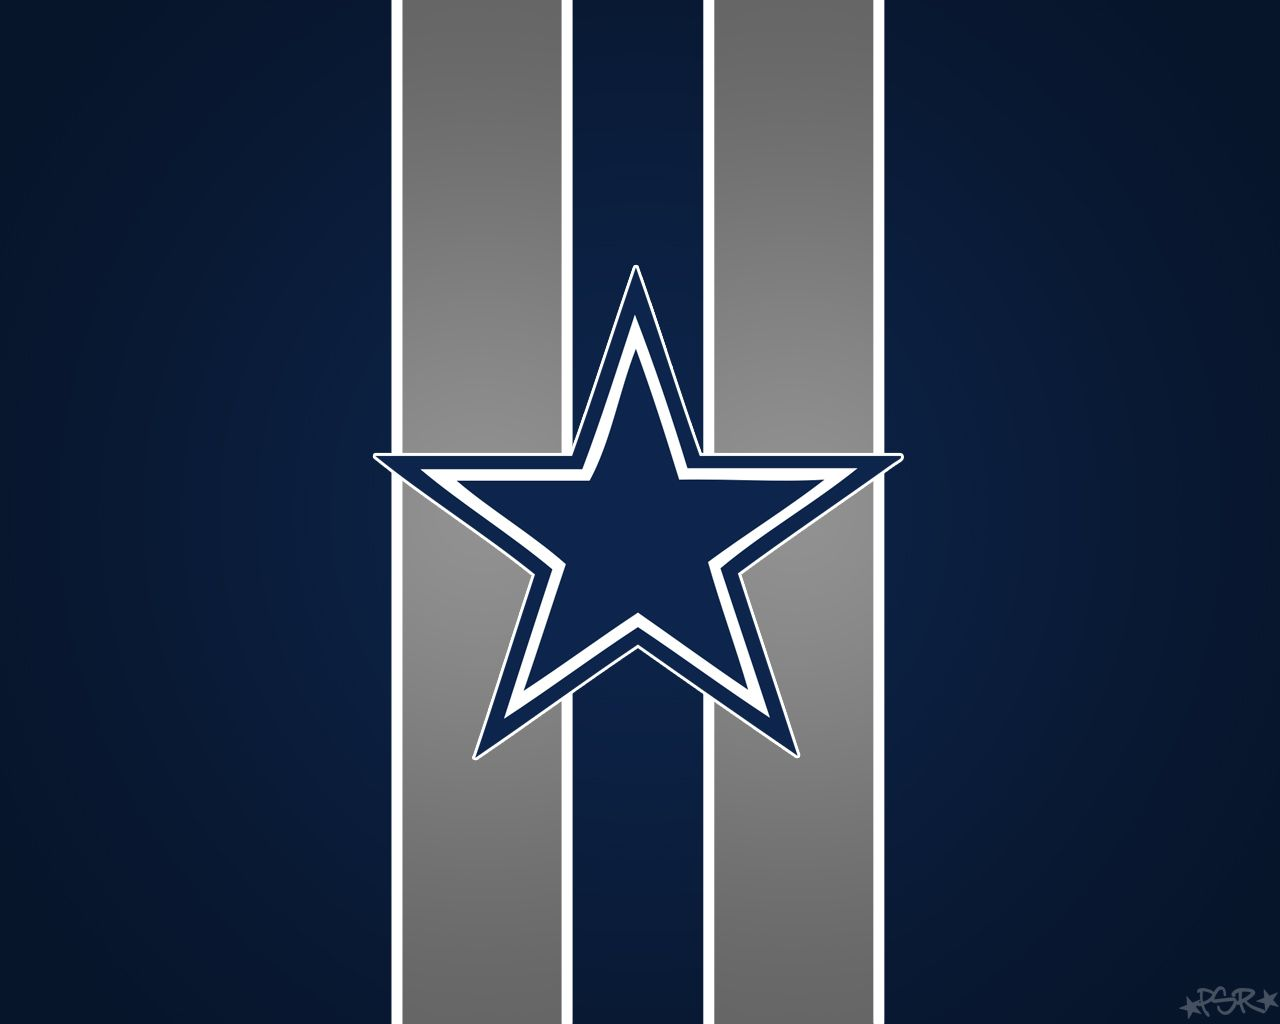 Cowboys Hd Wallpapers Top Free Cowboys Hd Backgrounds Wallpaperaccess